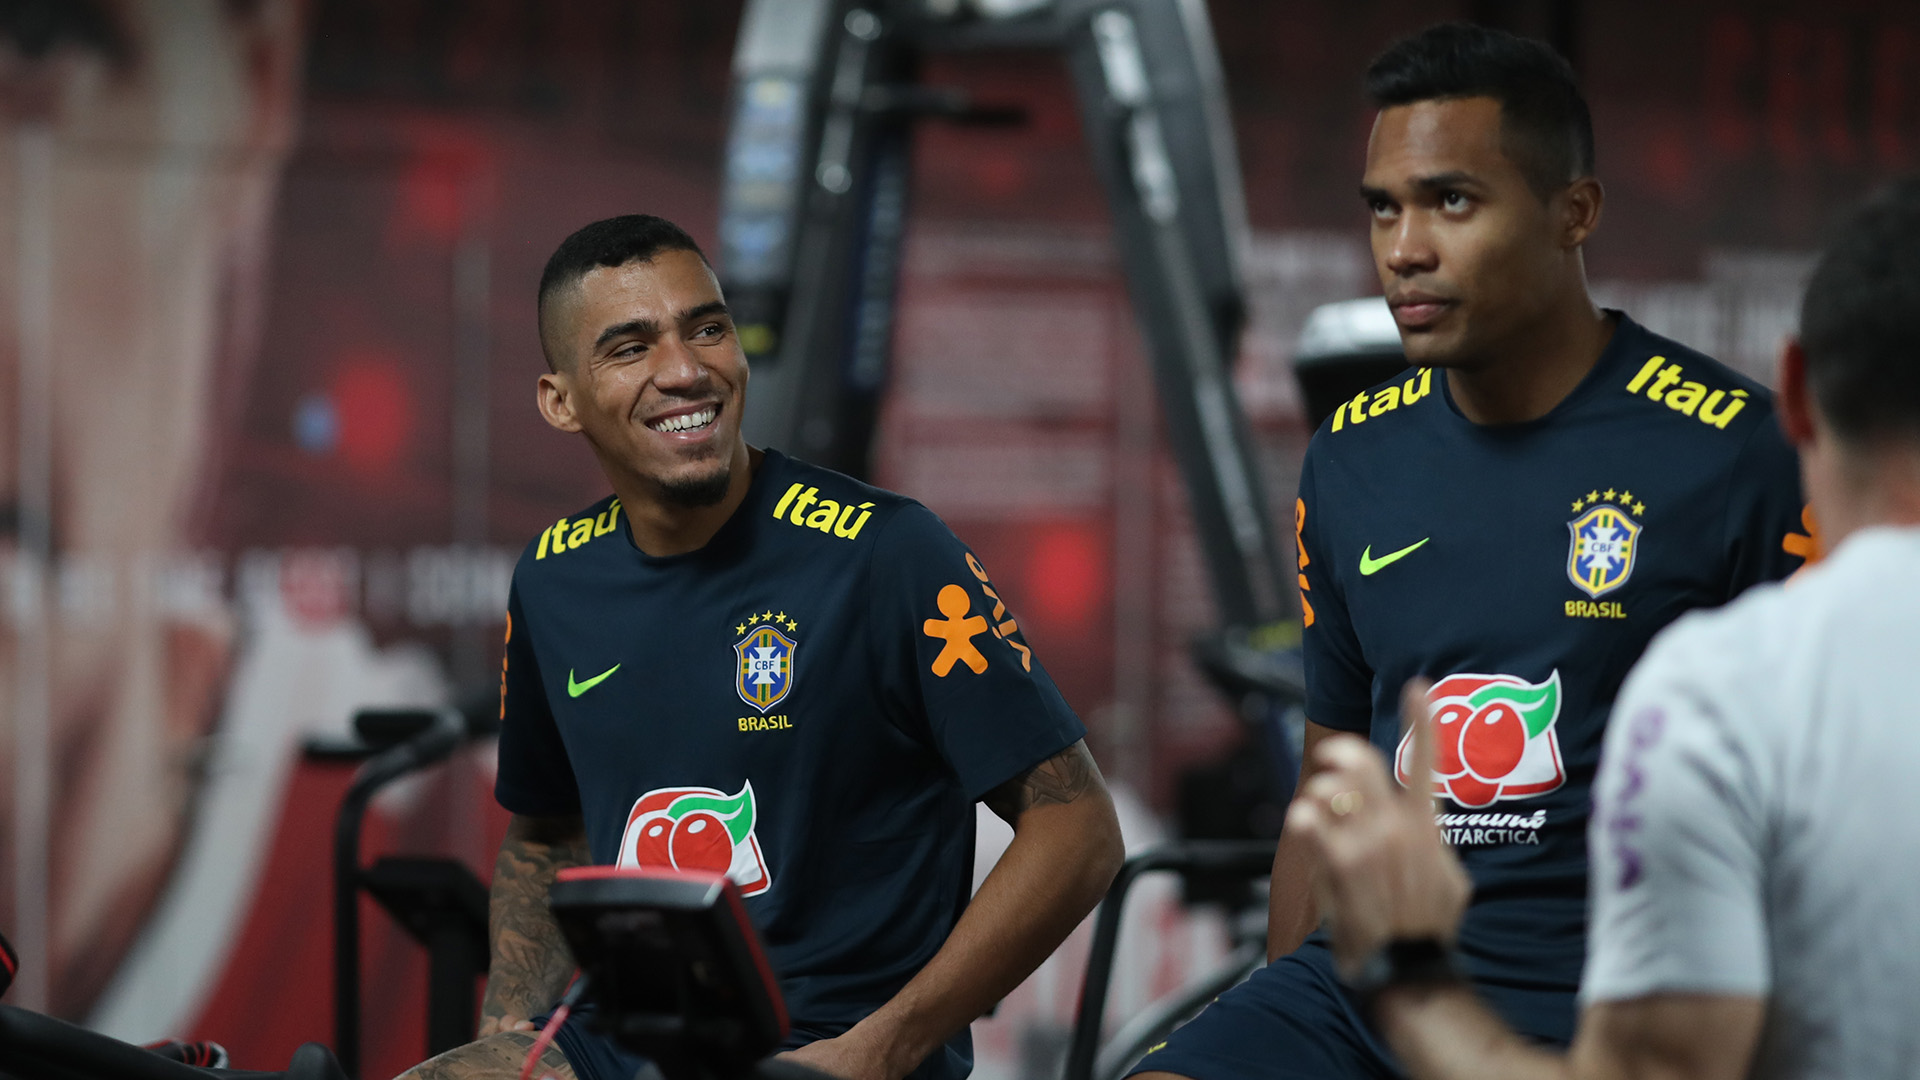 Allan Alex Sandro Brazil training 12112018